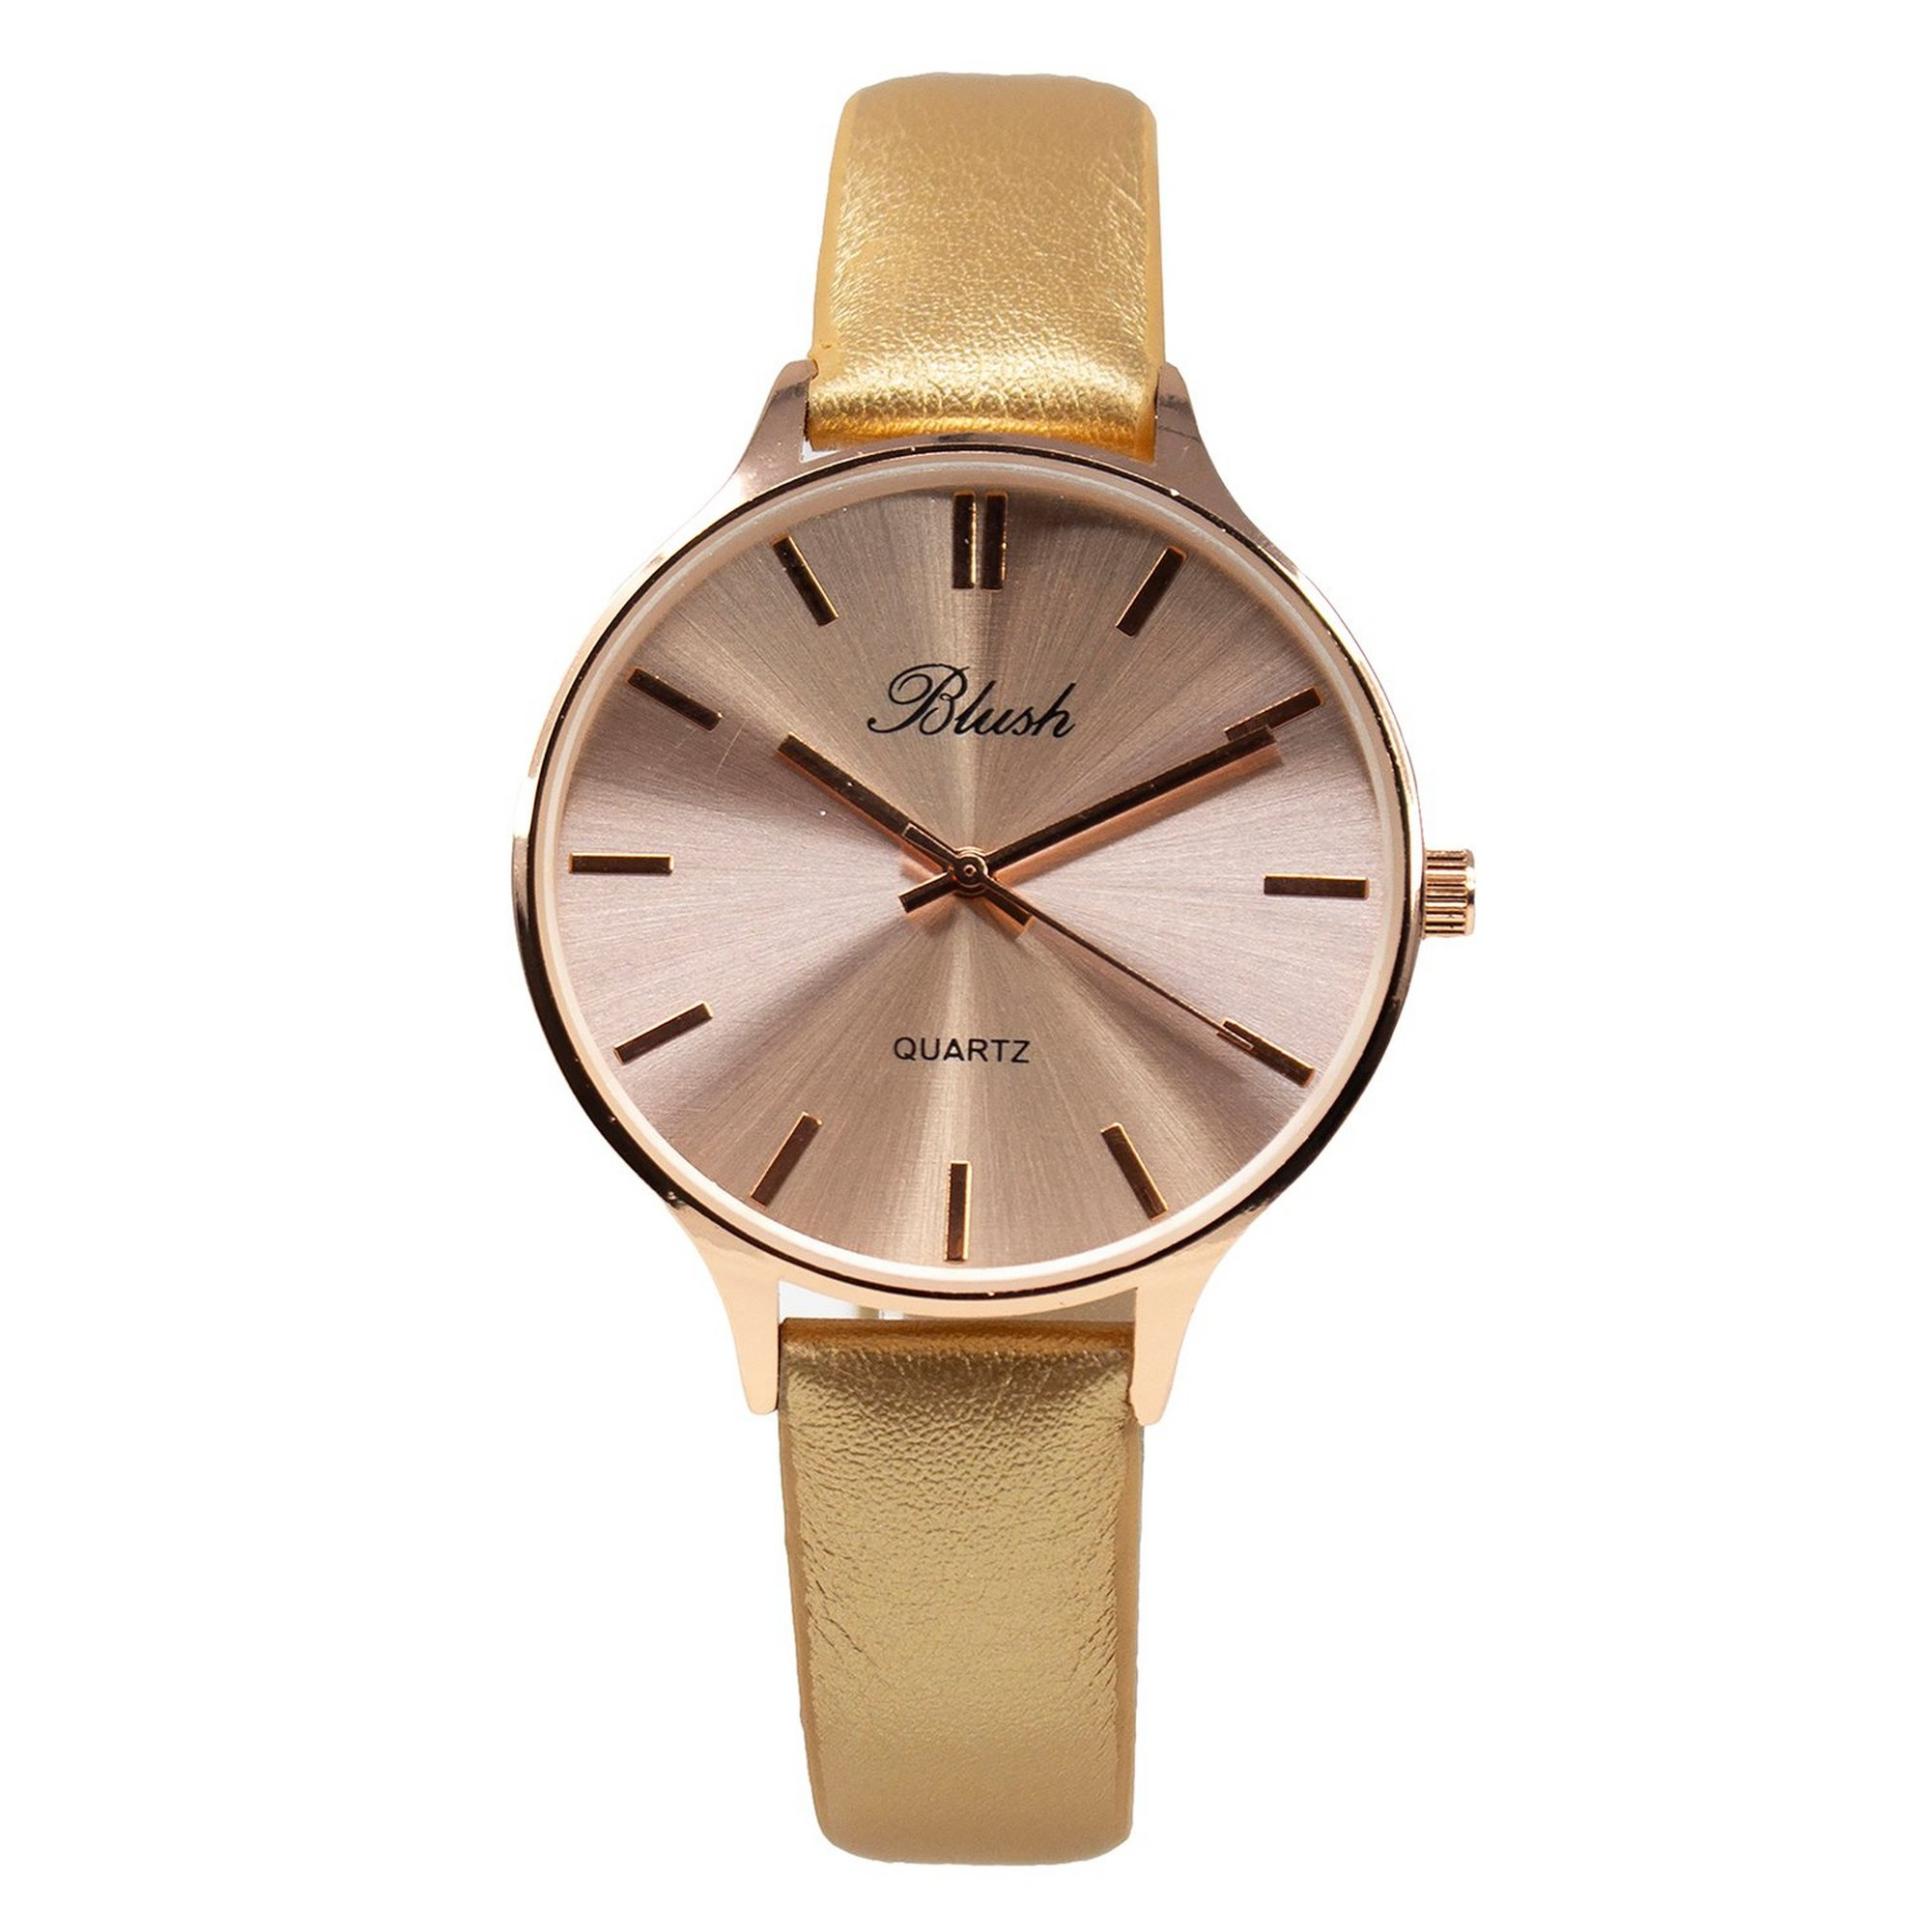 Image of Ladies Blush Analogue Watch with Shiny Pink Strap